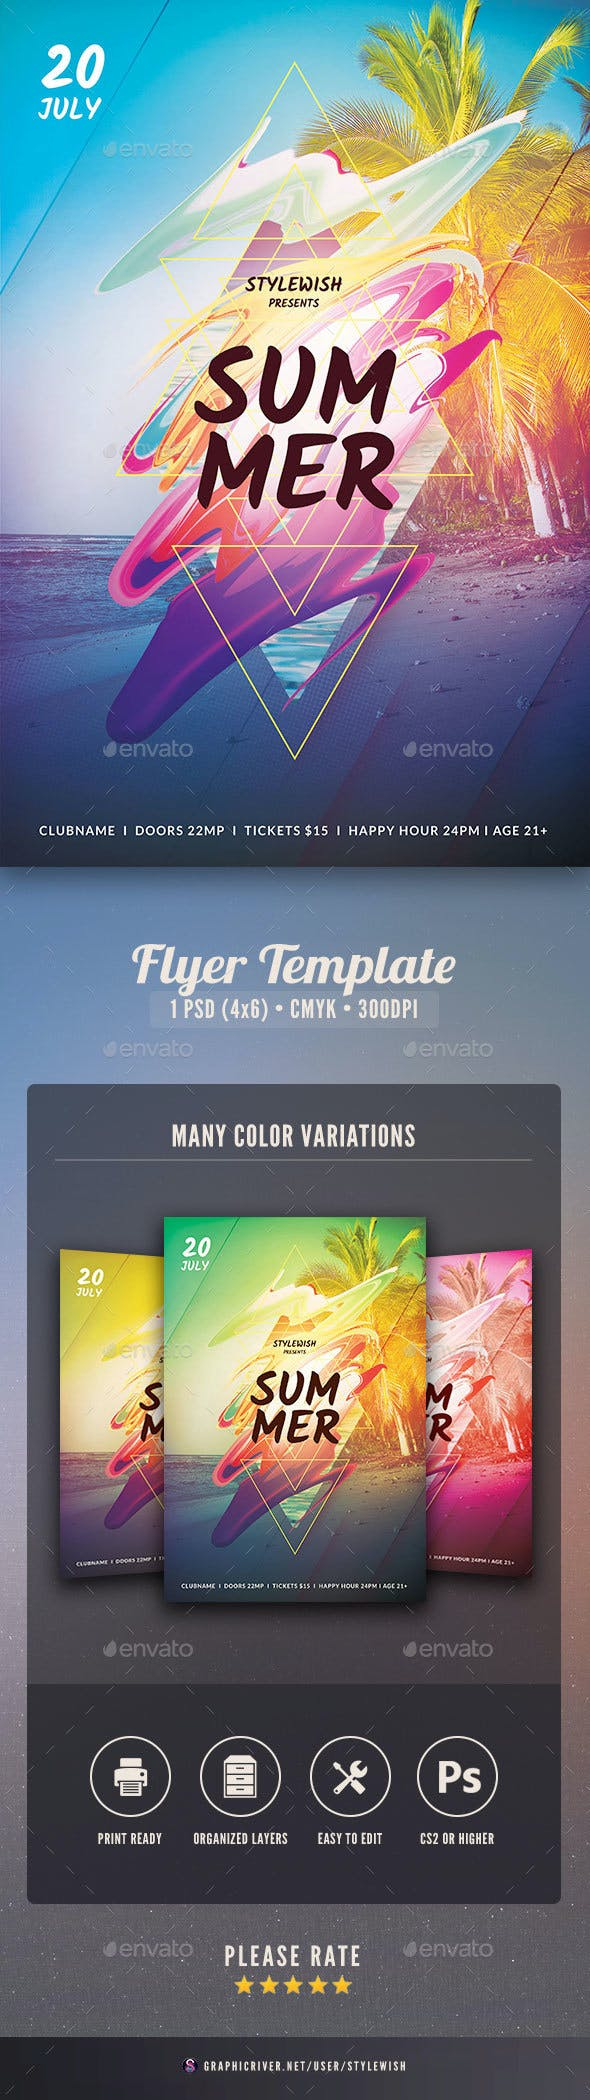 summer flyer by stylewish graphicriver